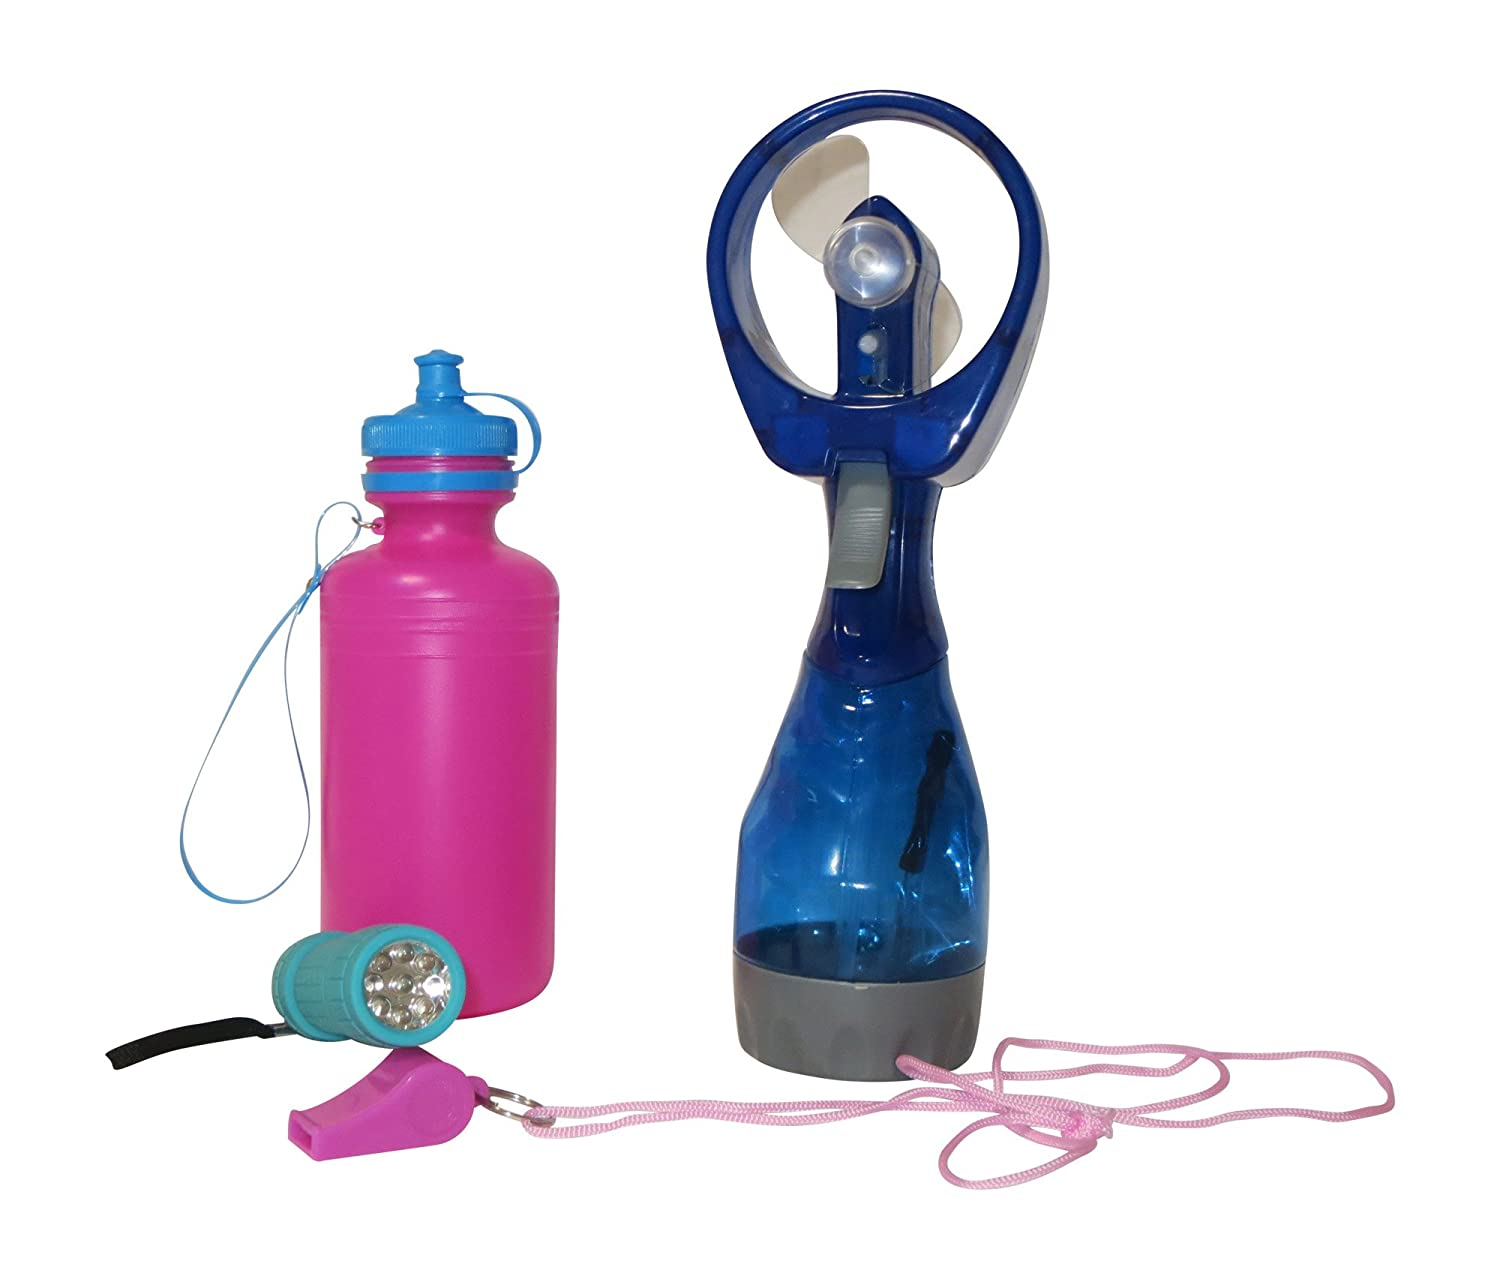 4 Piece Set For Sports, Hiking and Camping with LED flashlight, Canteen, Whistle, Misting Fan